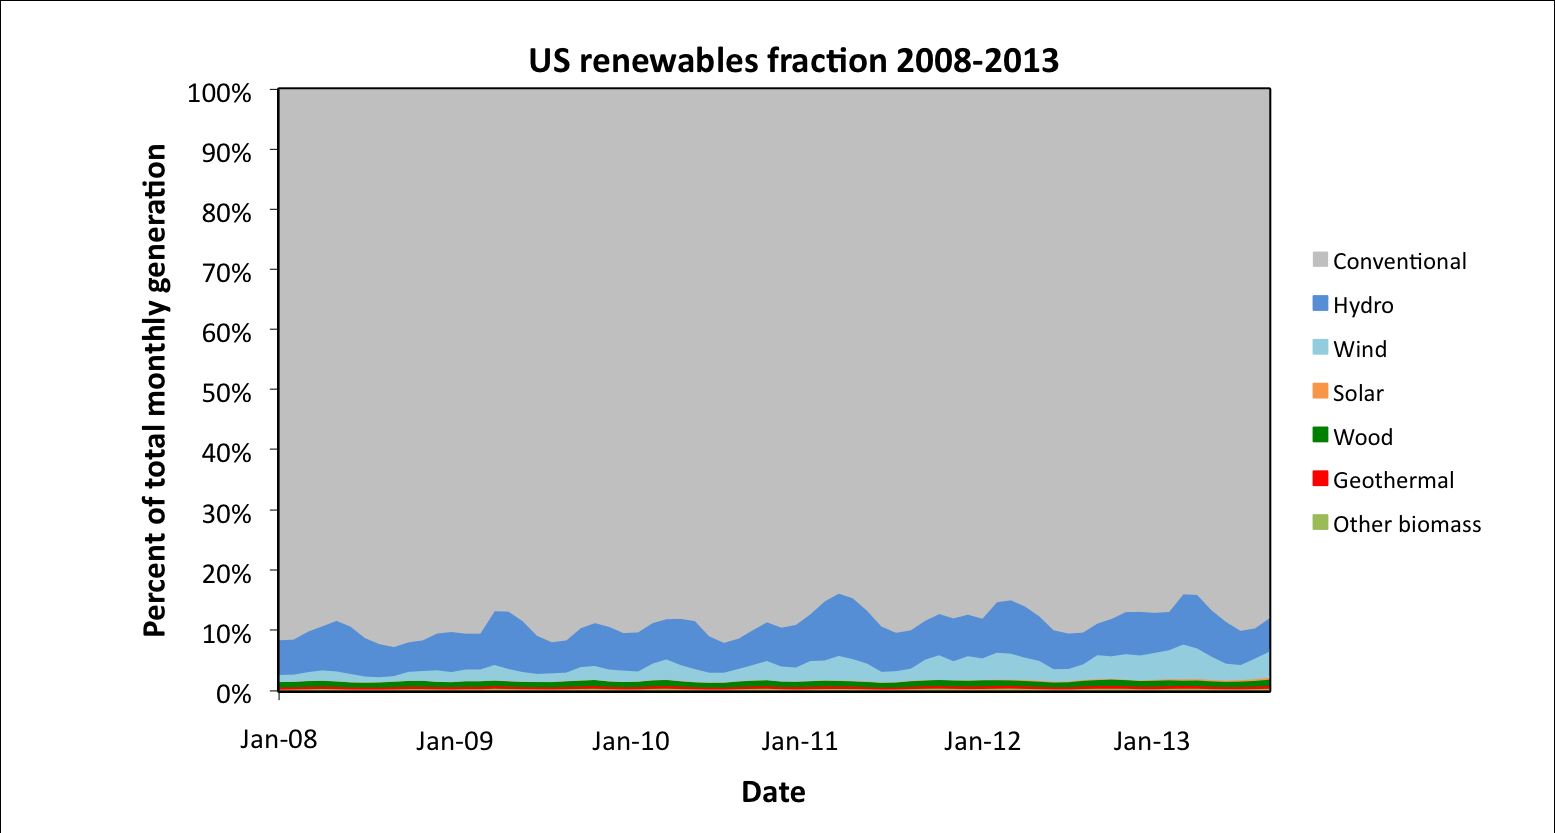 Figure 2: Renewable electricity generation in the United States by source, 2008-2013. Figure 3: Fraction of electricity derived from renewables in the United States, 2008-2013.